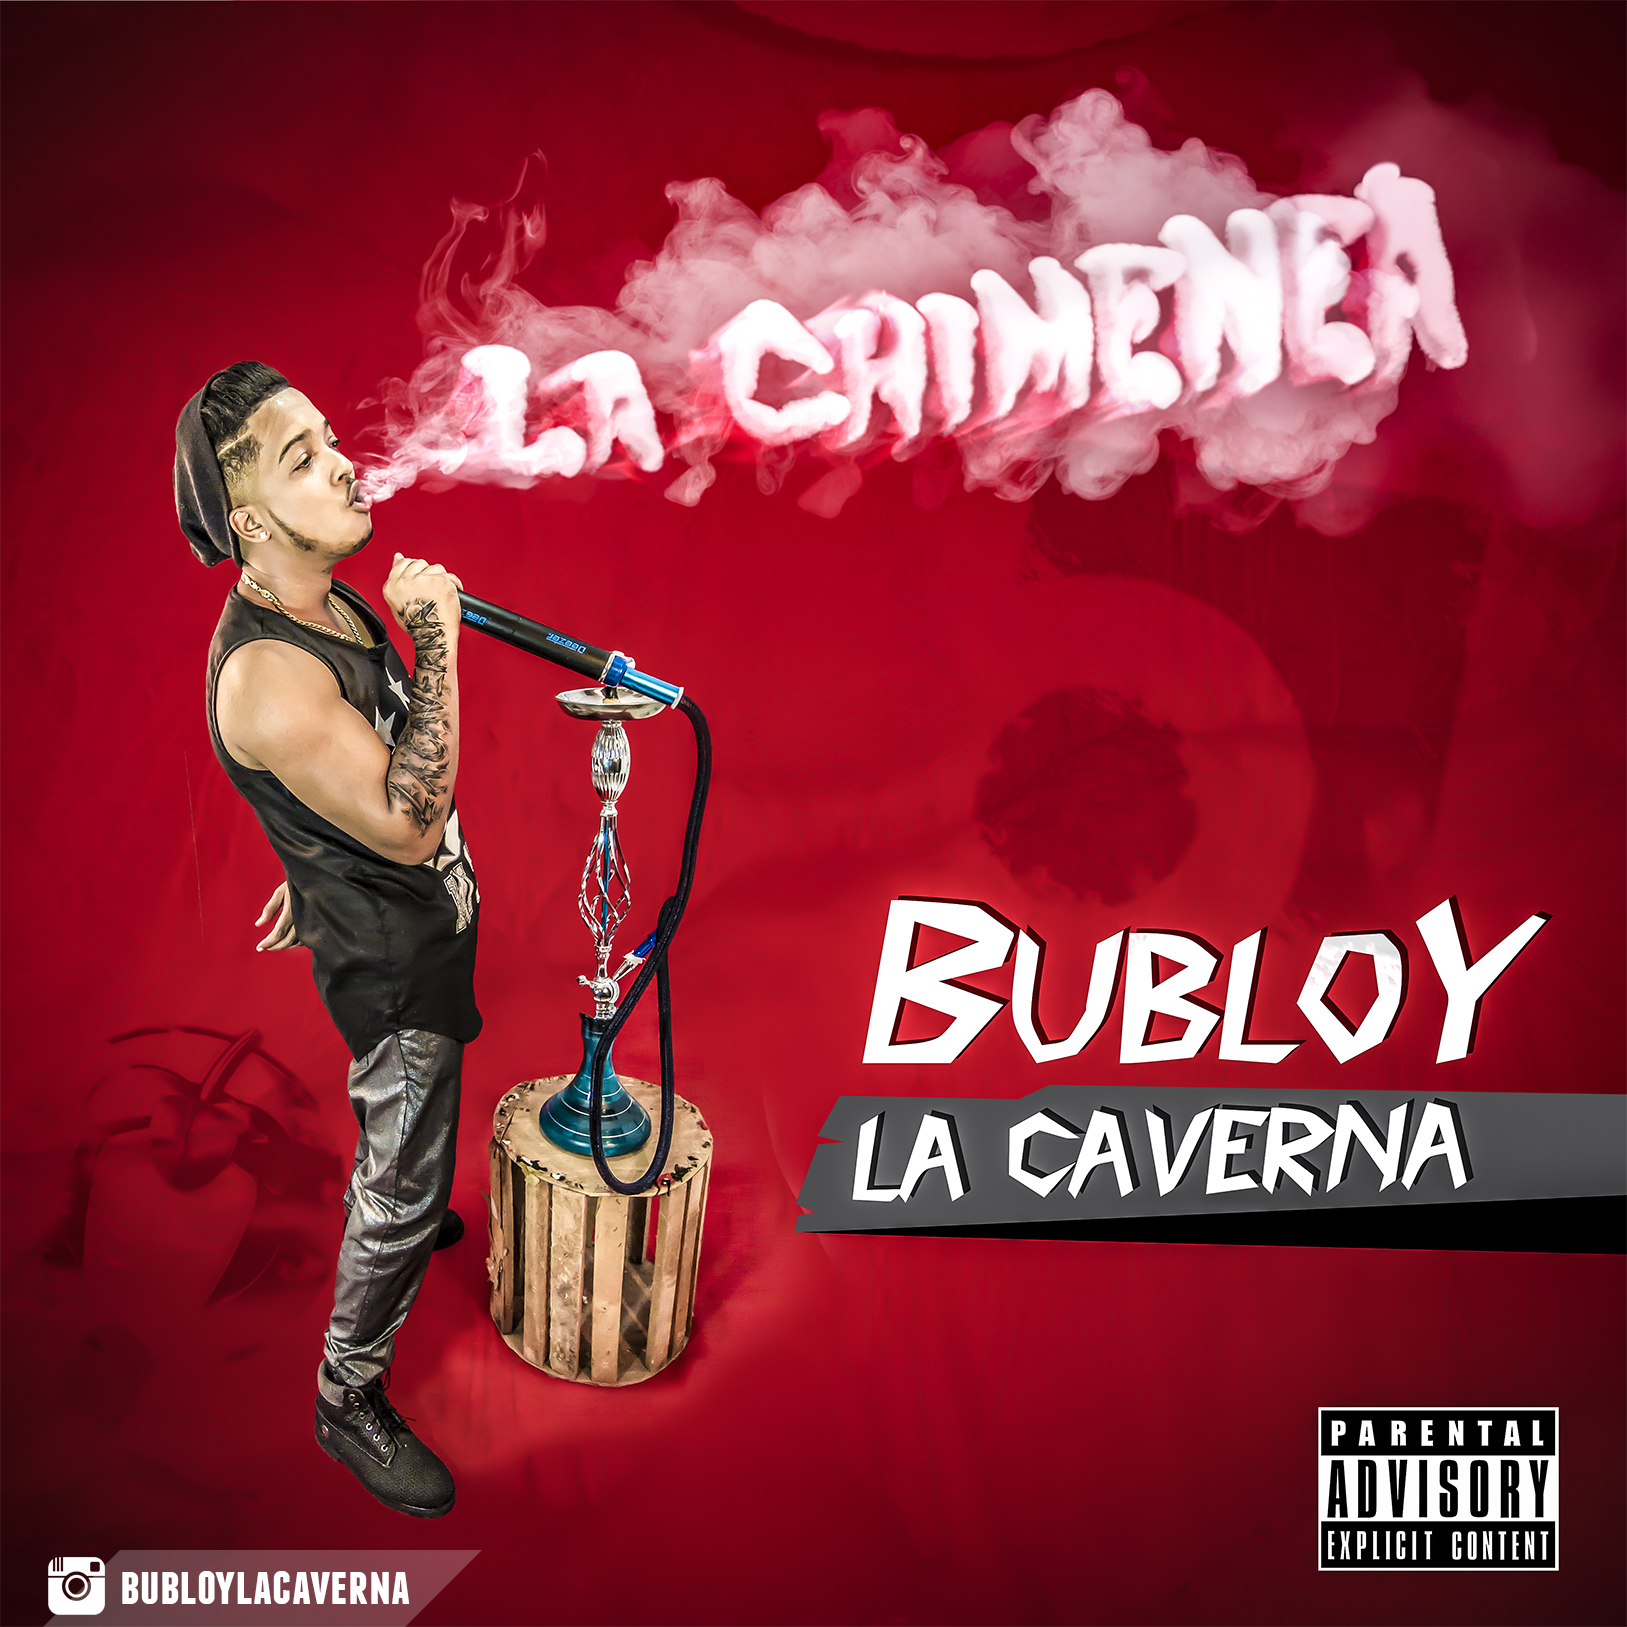 Bubloy